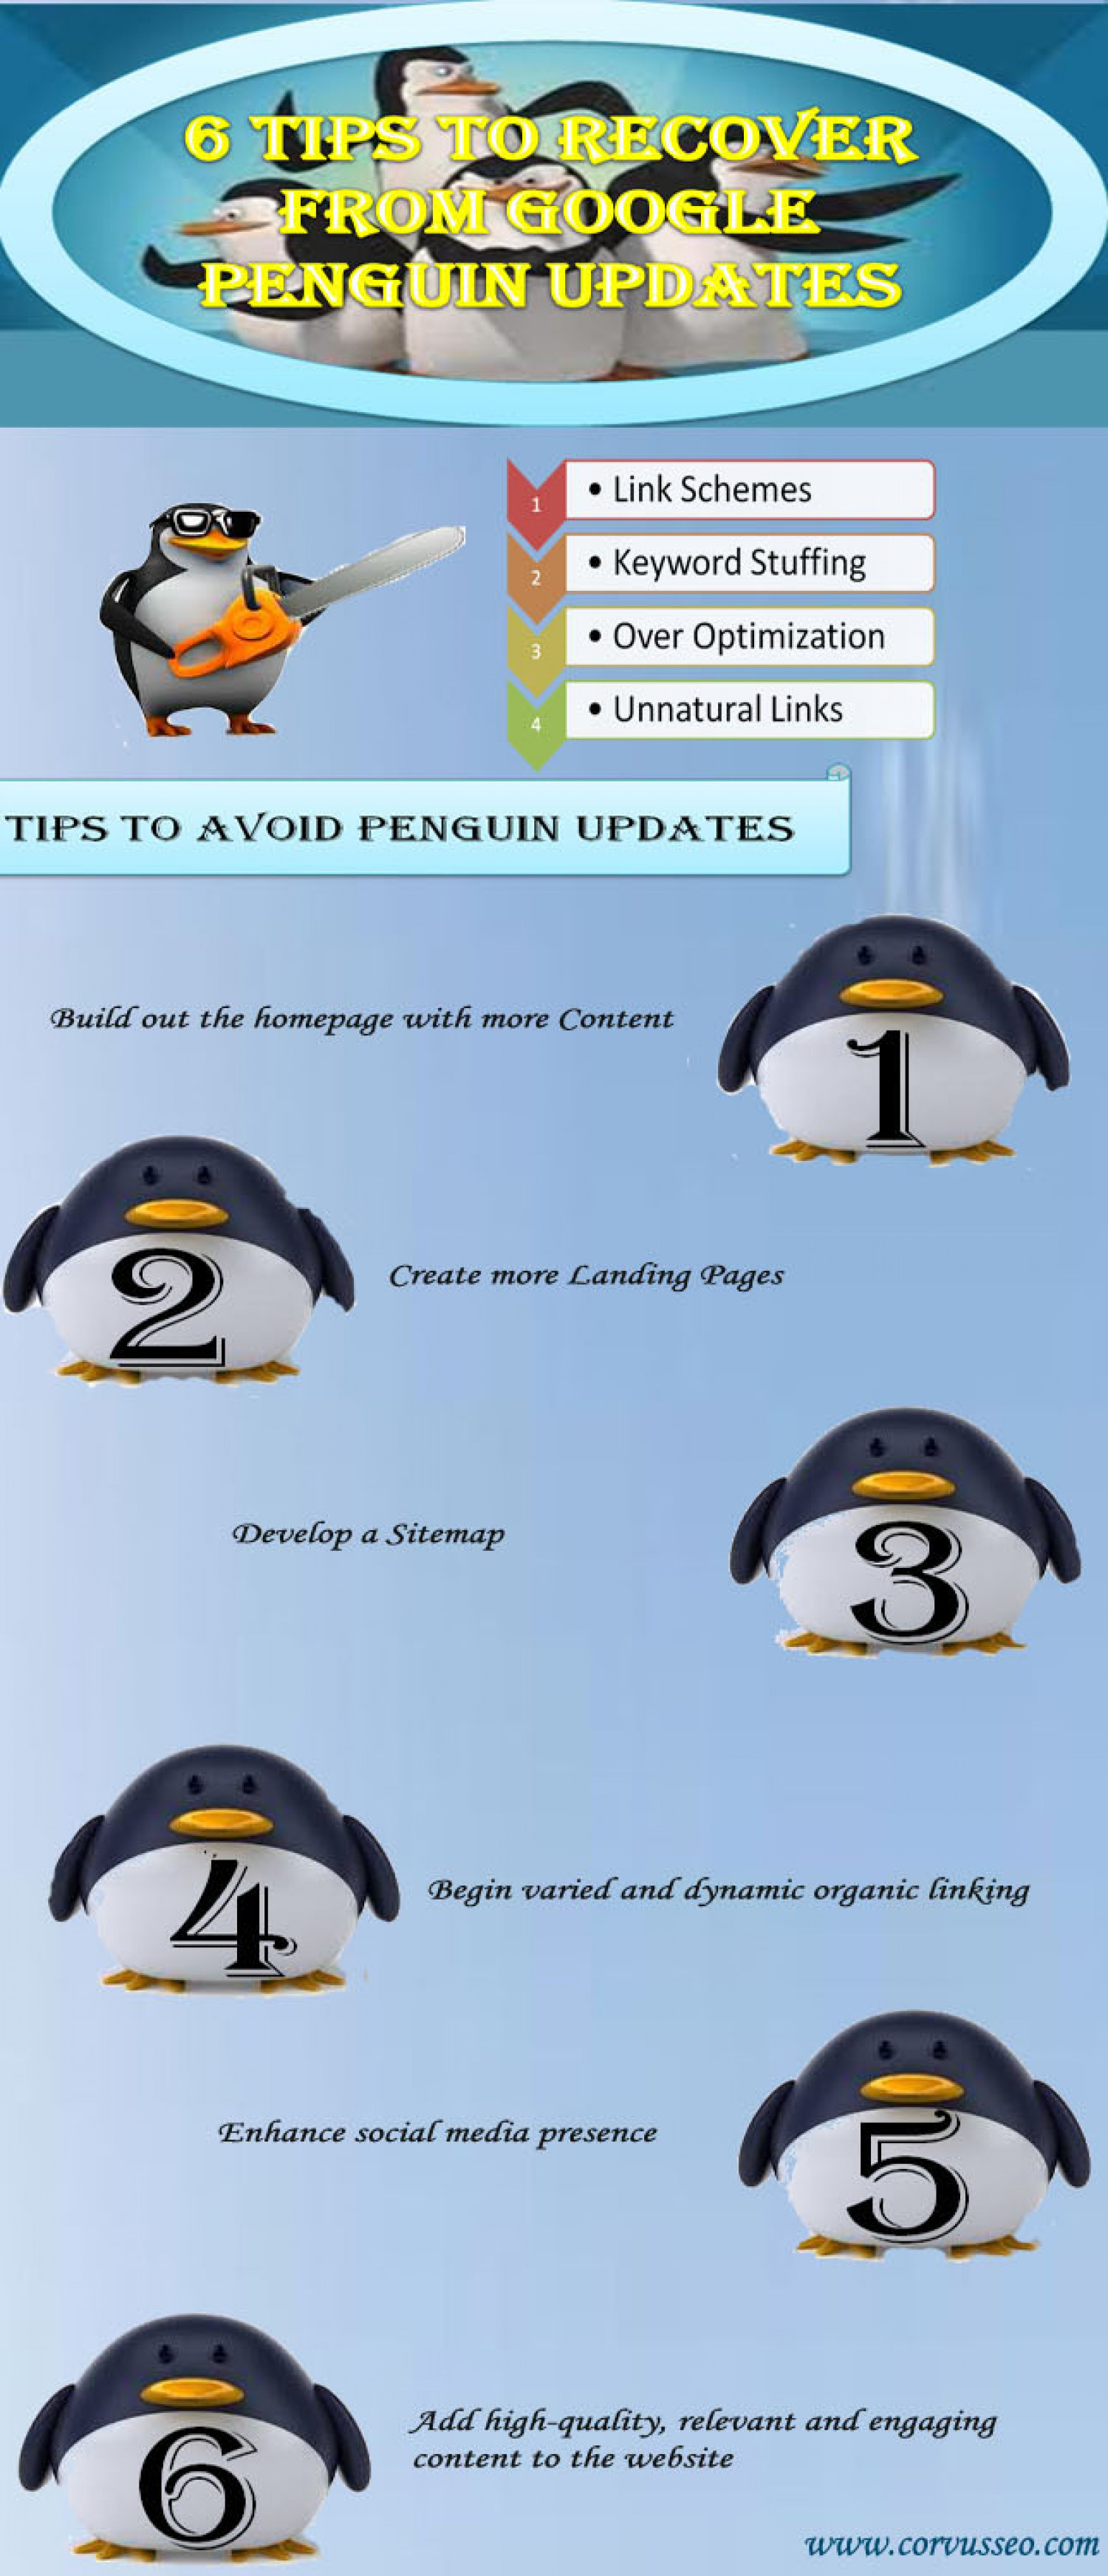 6 tips to recover from Google Penguin Updates Infographic